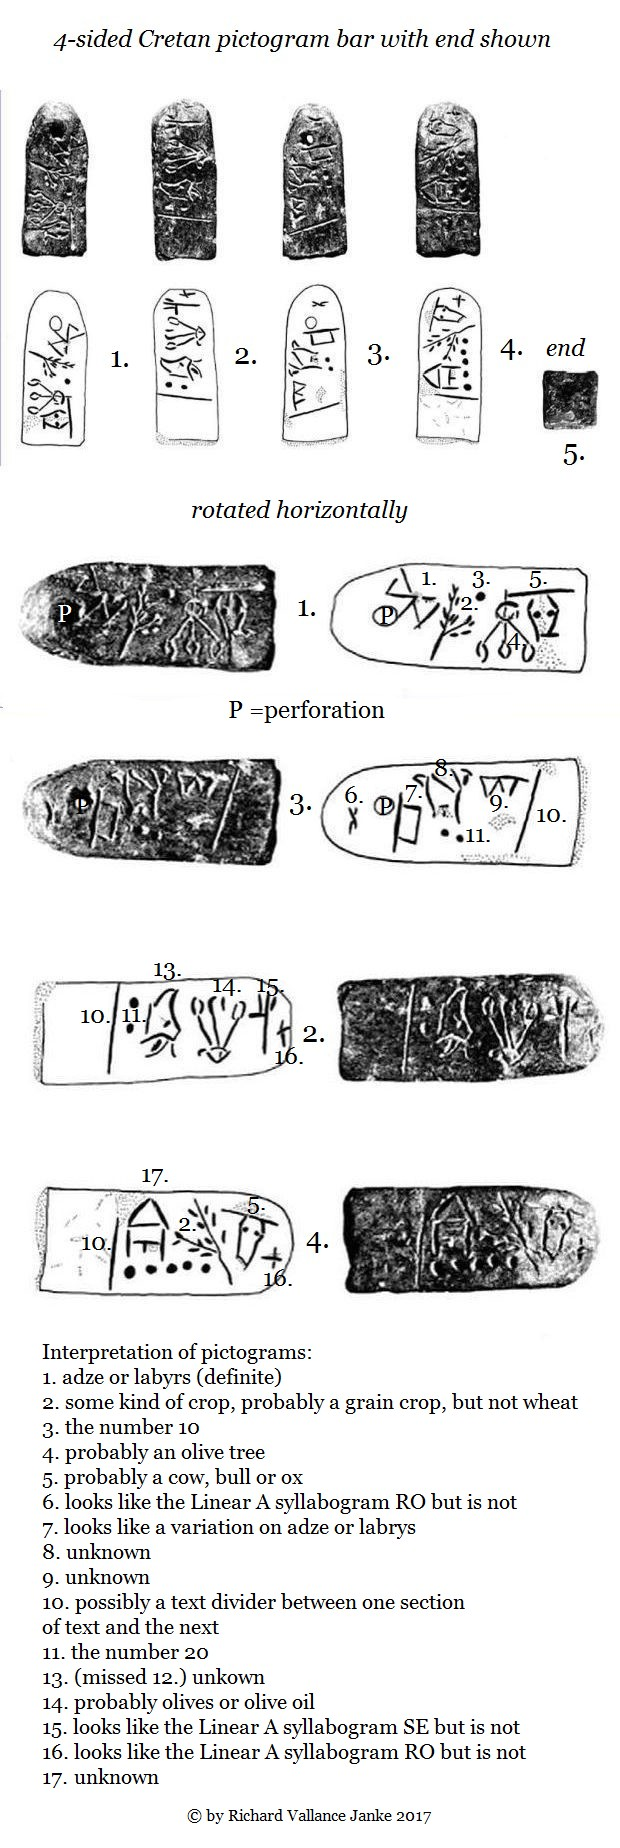 4-sided Cretan pictogram bar with end shown